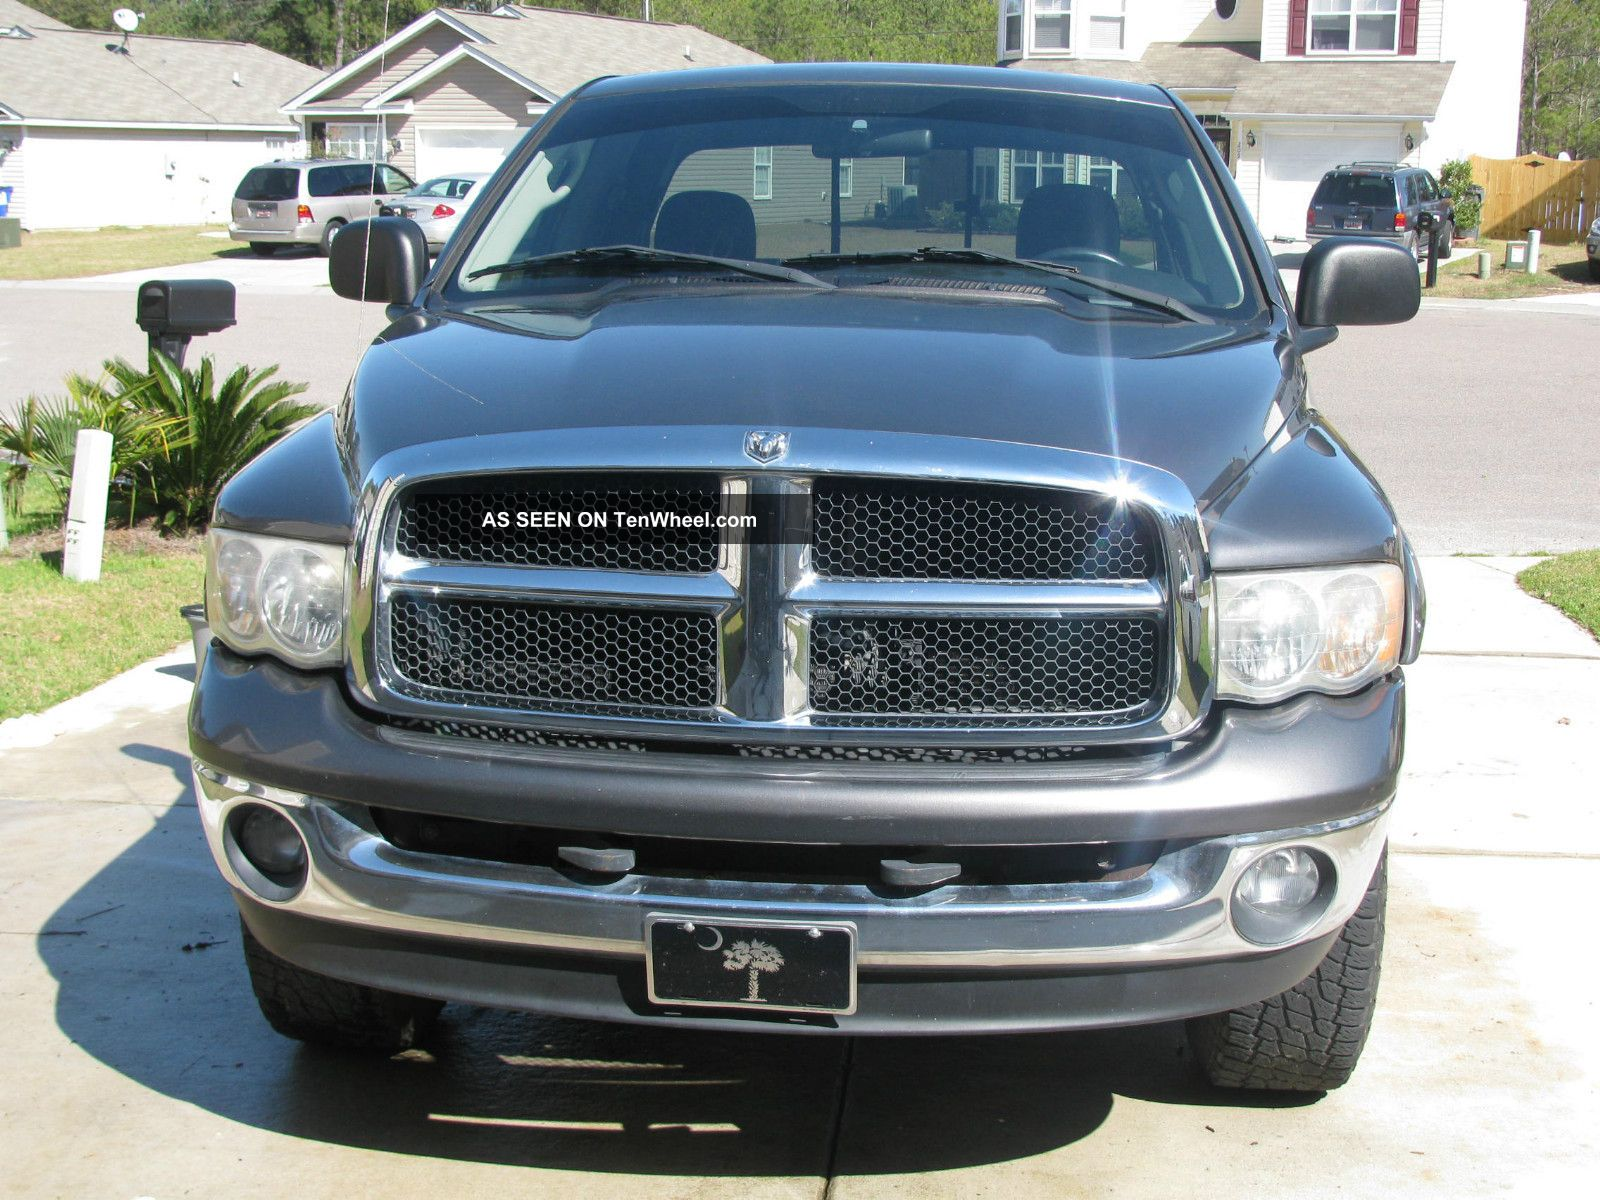 2003 dodge ram 1500 4x4 quad cab. Black Bedroom Furniture Sets. Home Design Ideas